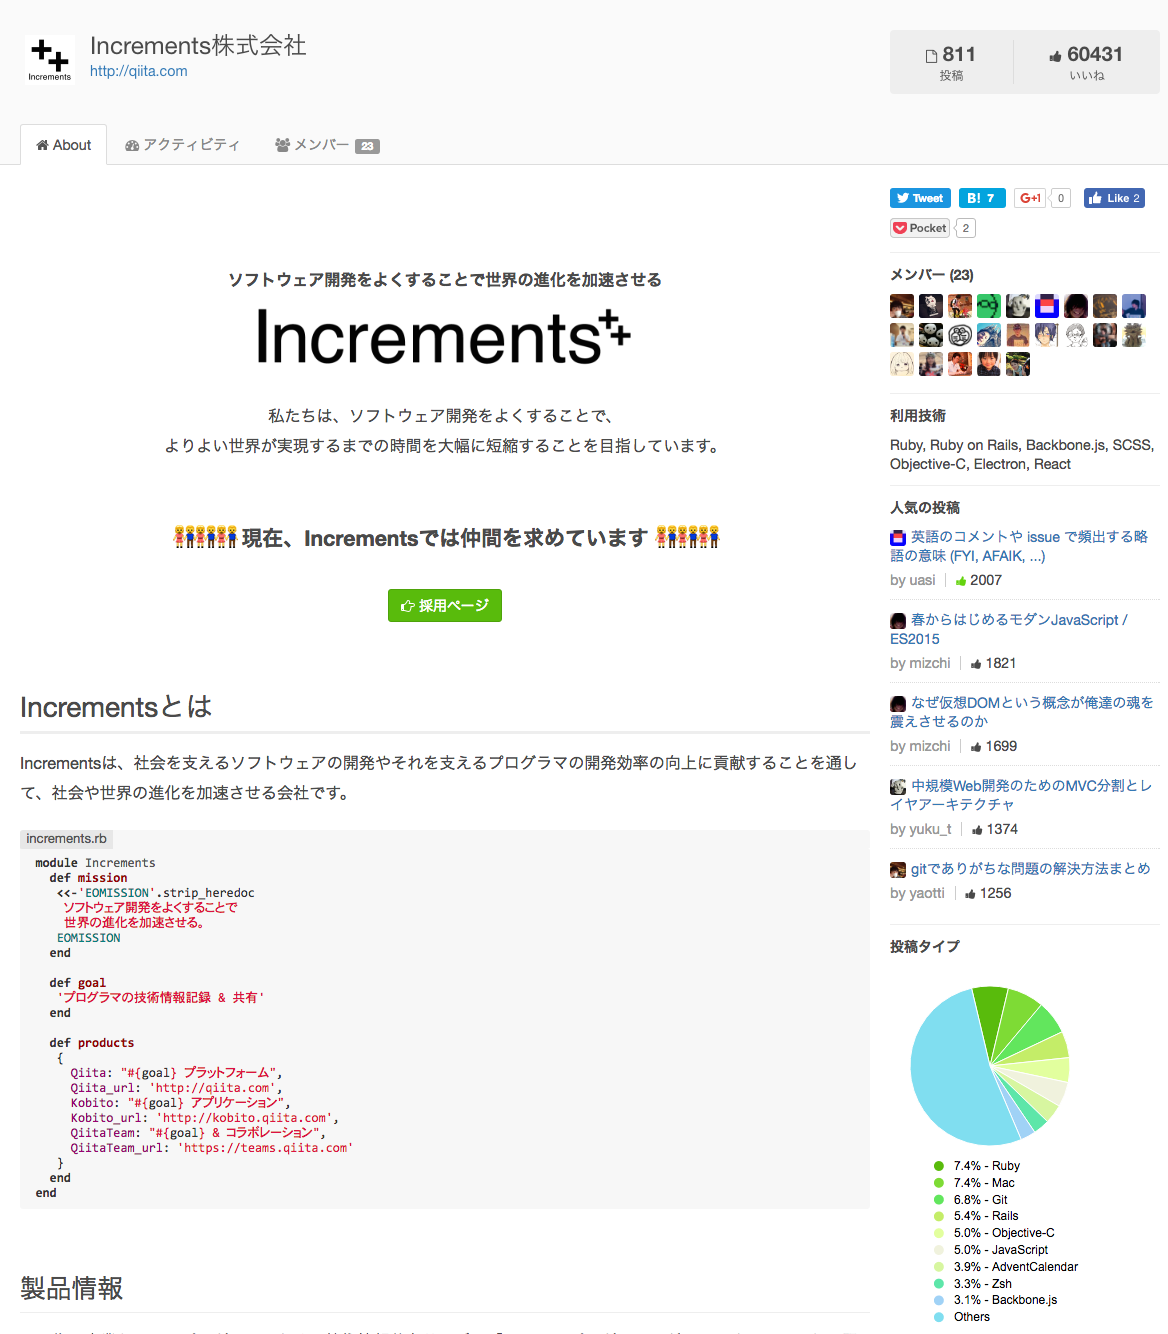 screencapture-qiita-organizations-increments-1488514958003.png